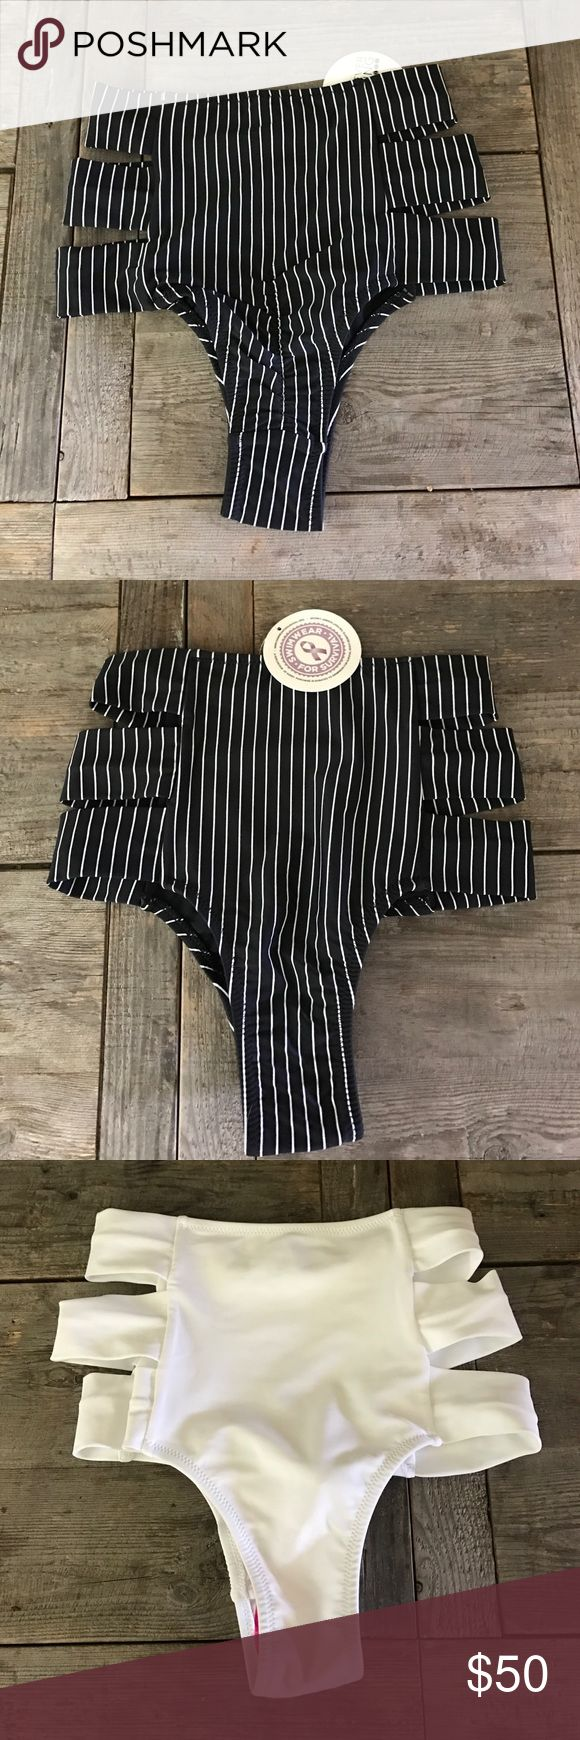 2 Forever Young High Waist, Scrunch Bikini Bottoms Two Hollywood High Waist Bikini Bottoms: Black/White Pinstripe and All White. Forever Young Swim Bikinis